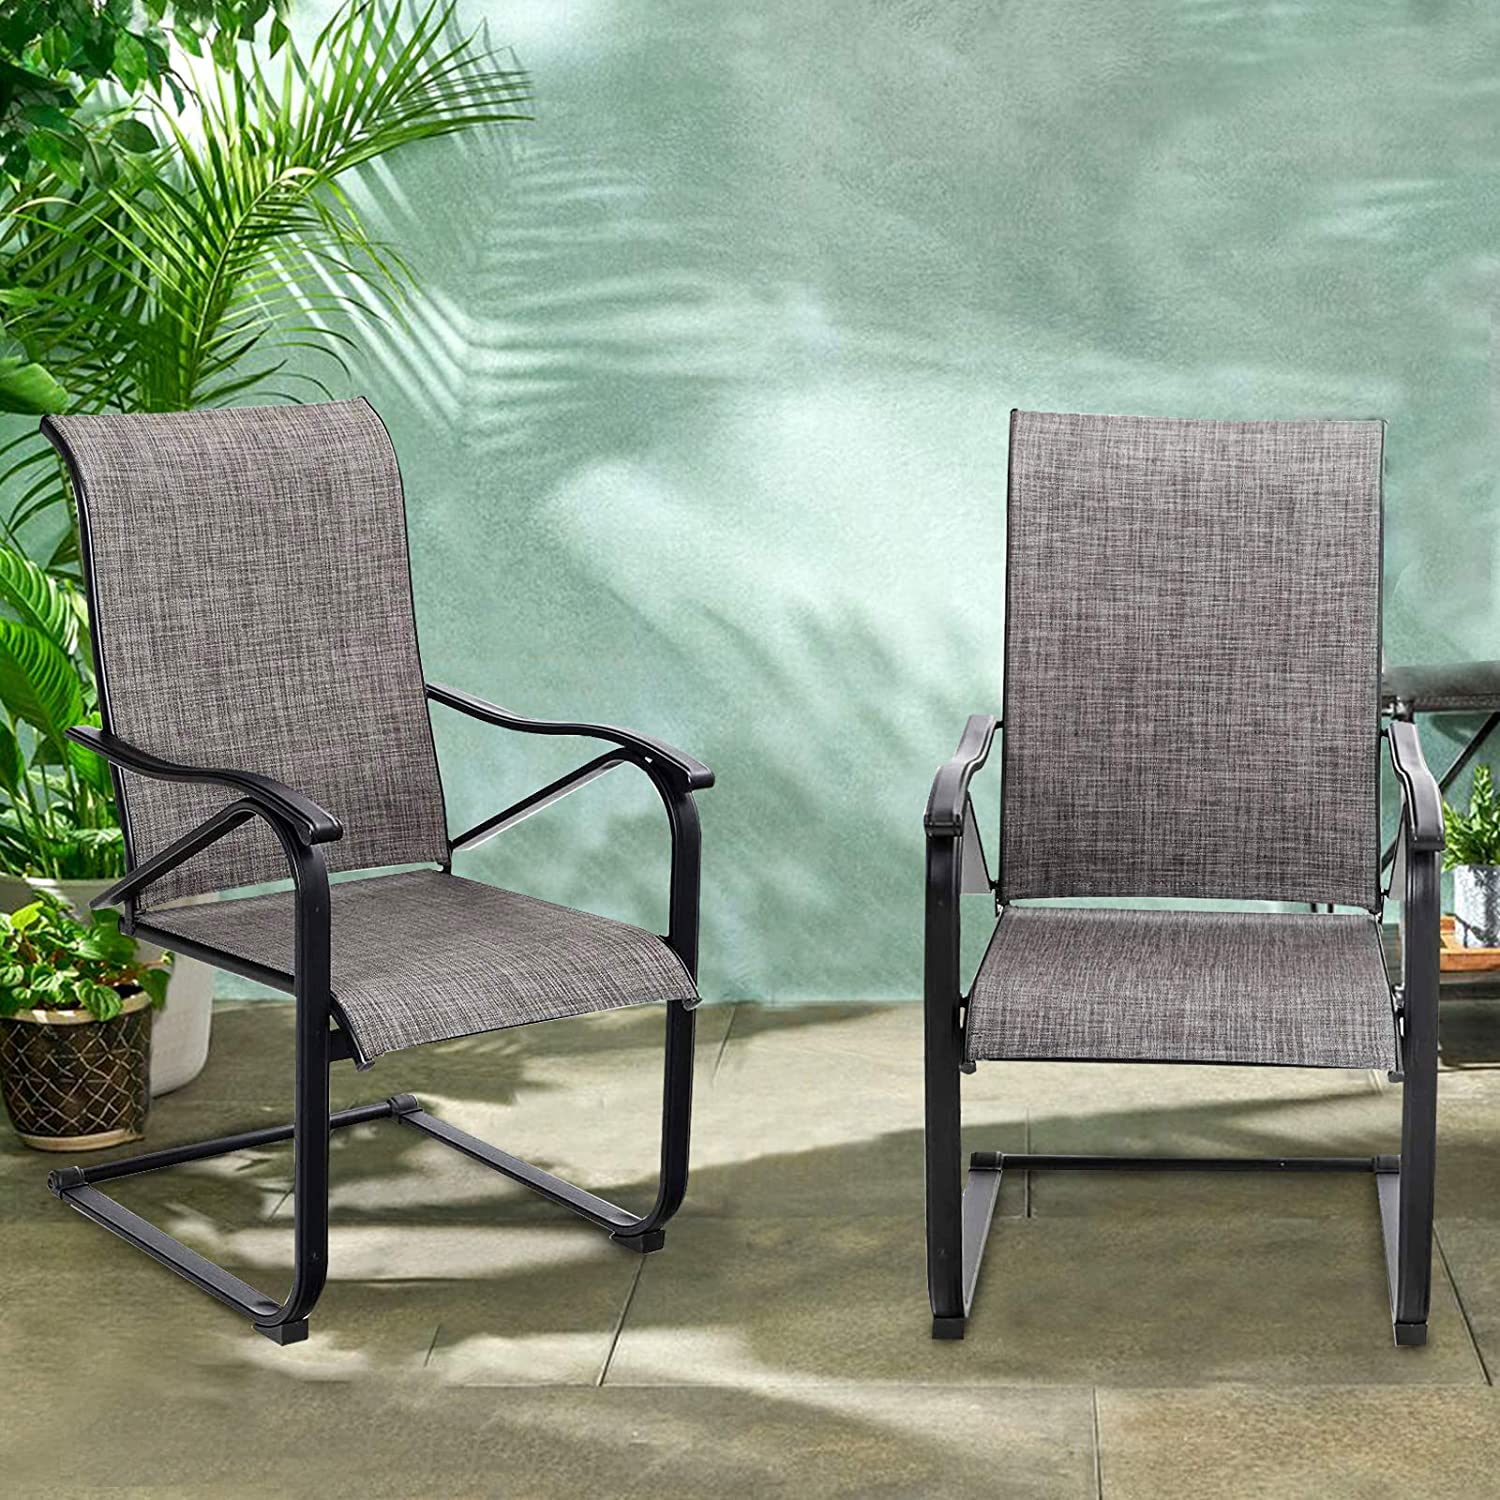 PHI VILLA Patio C Spring Motion Back M Chairs High Metal Fabric Our shop most Arlington Mall popular